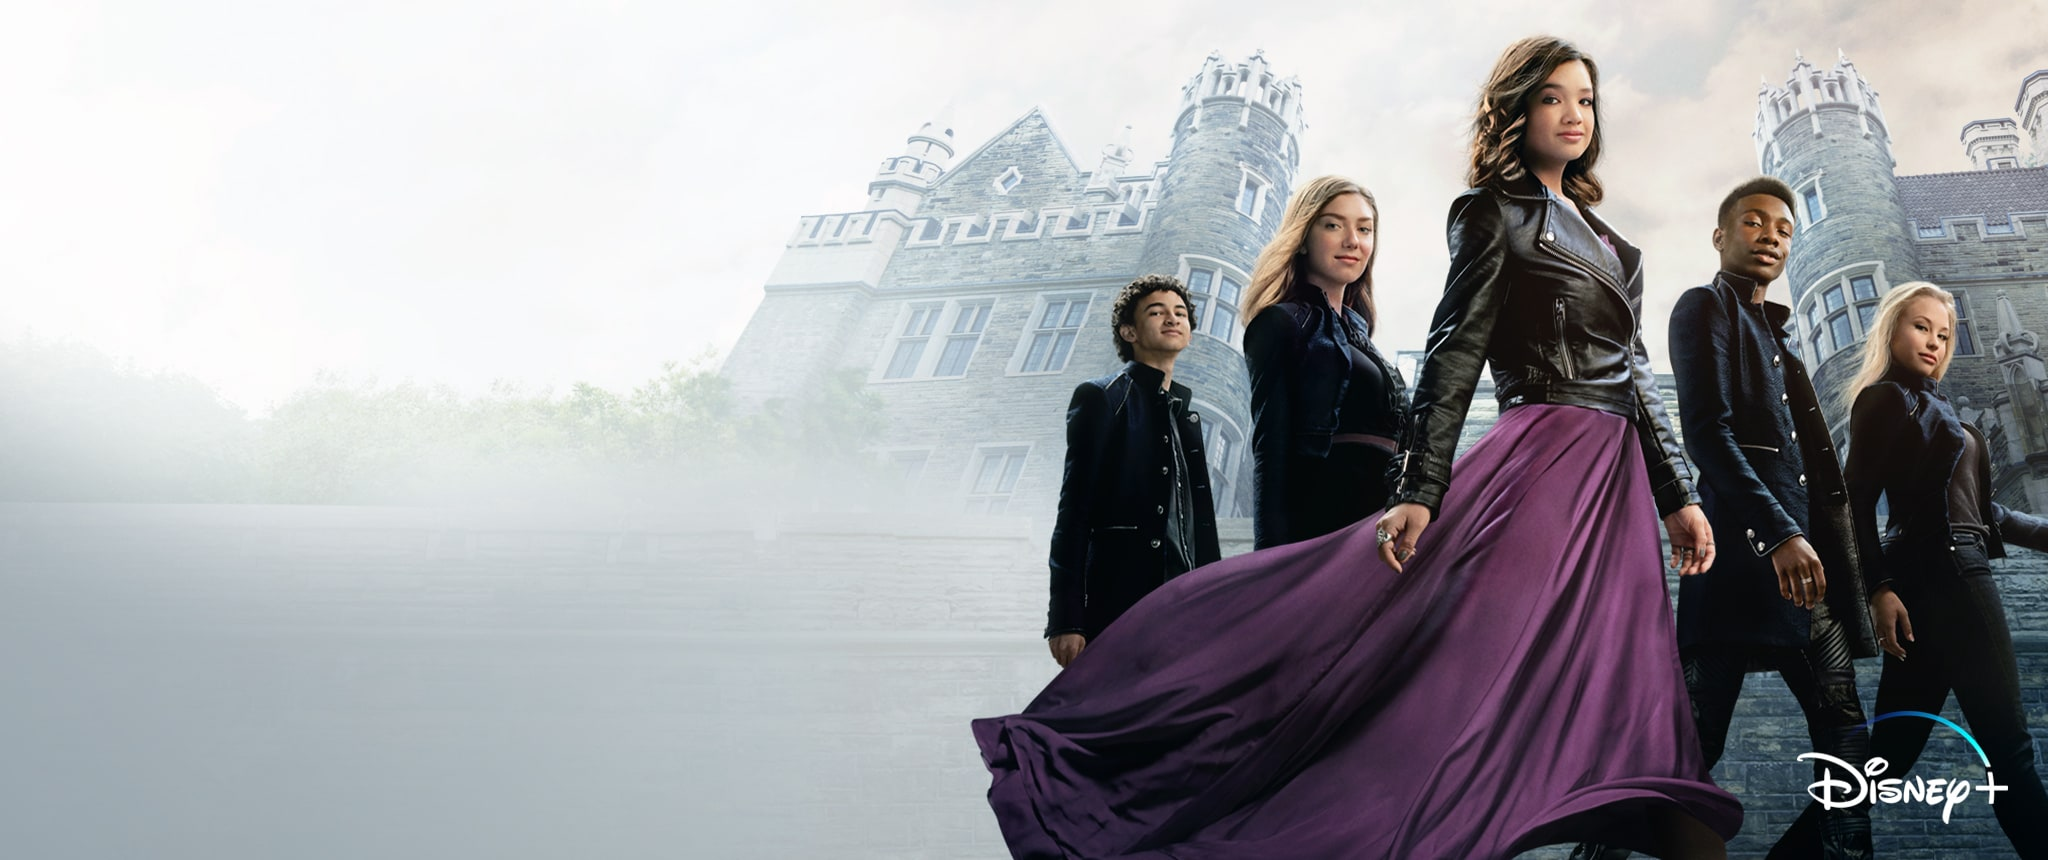 Hero - Disney+ - Secret Society of Second-Born Royals Now Streaming